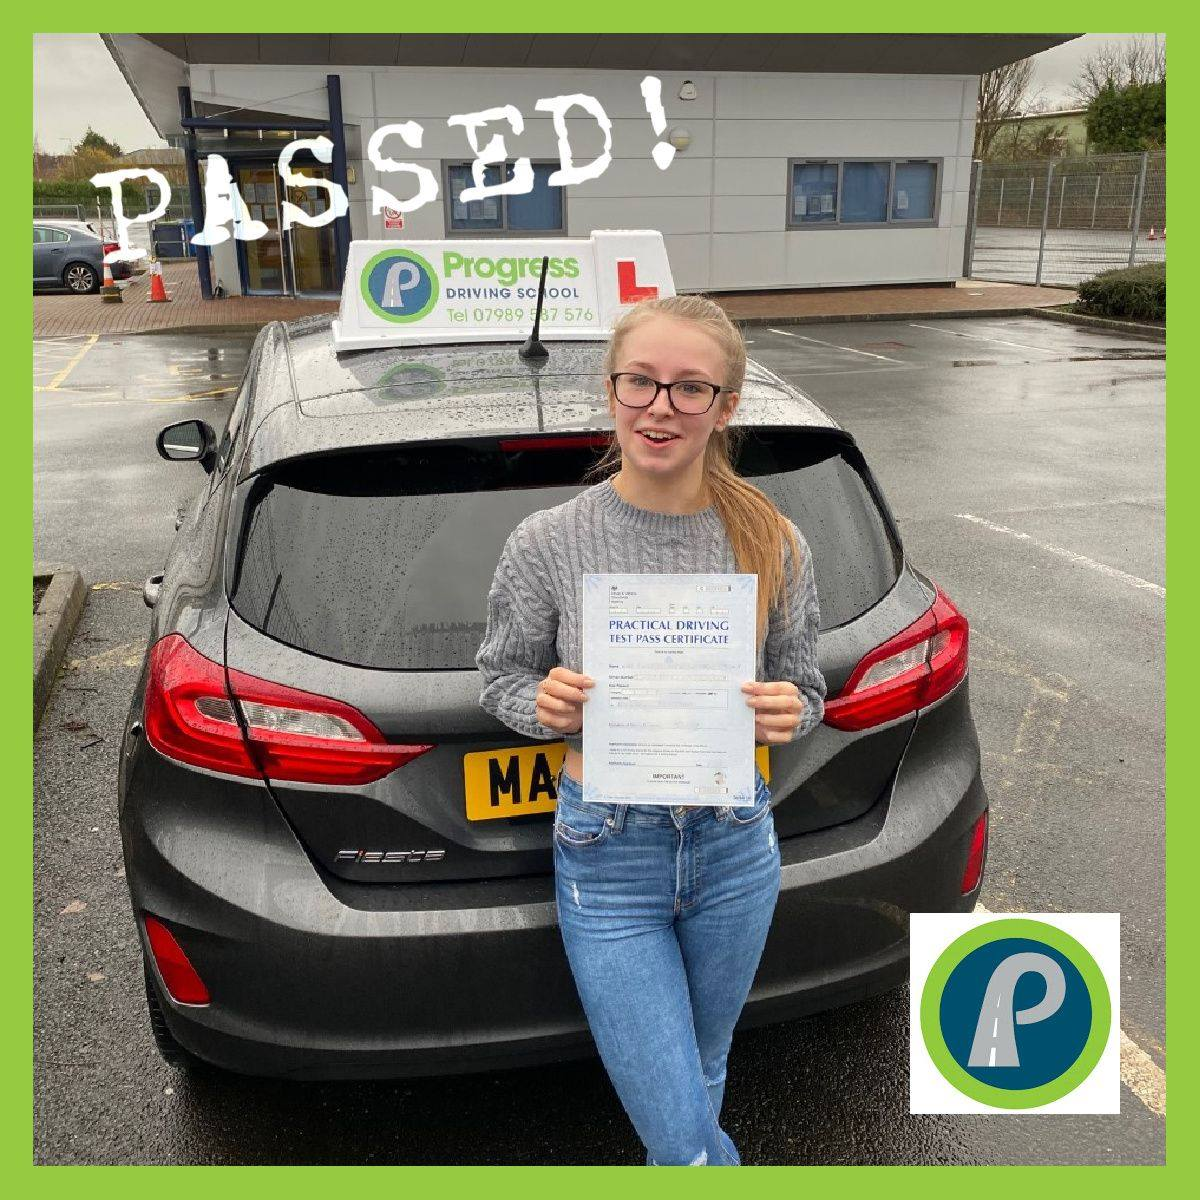 Courtney from Golborne passed her driving test first time after learning with Progress Driving School - despite being initially anxious about driving.